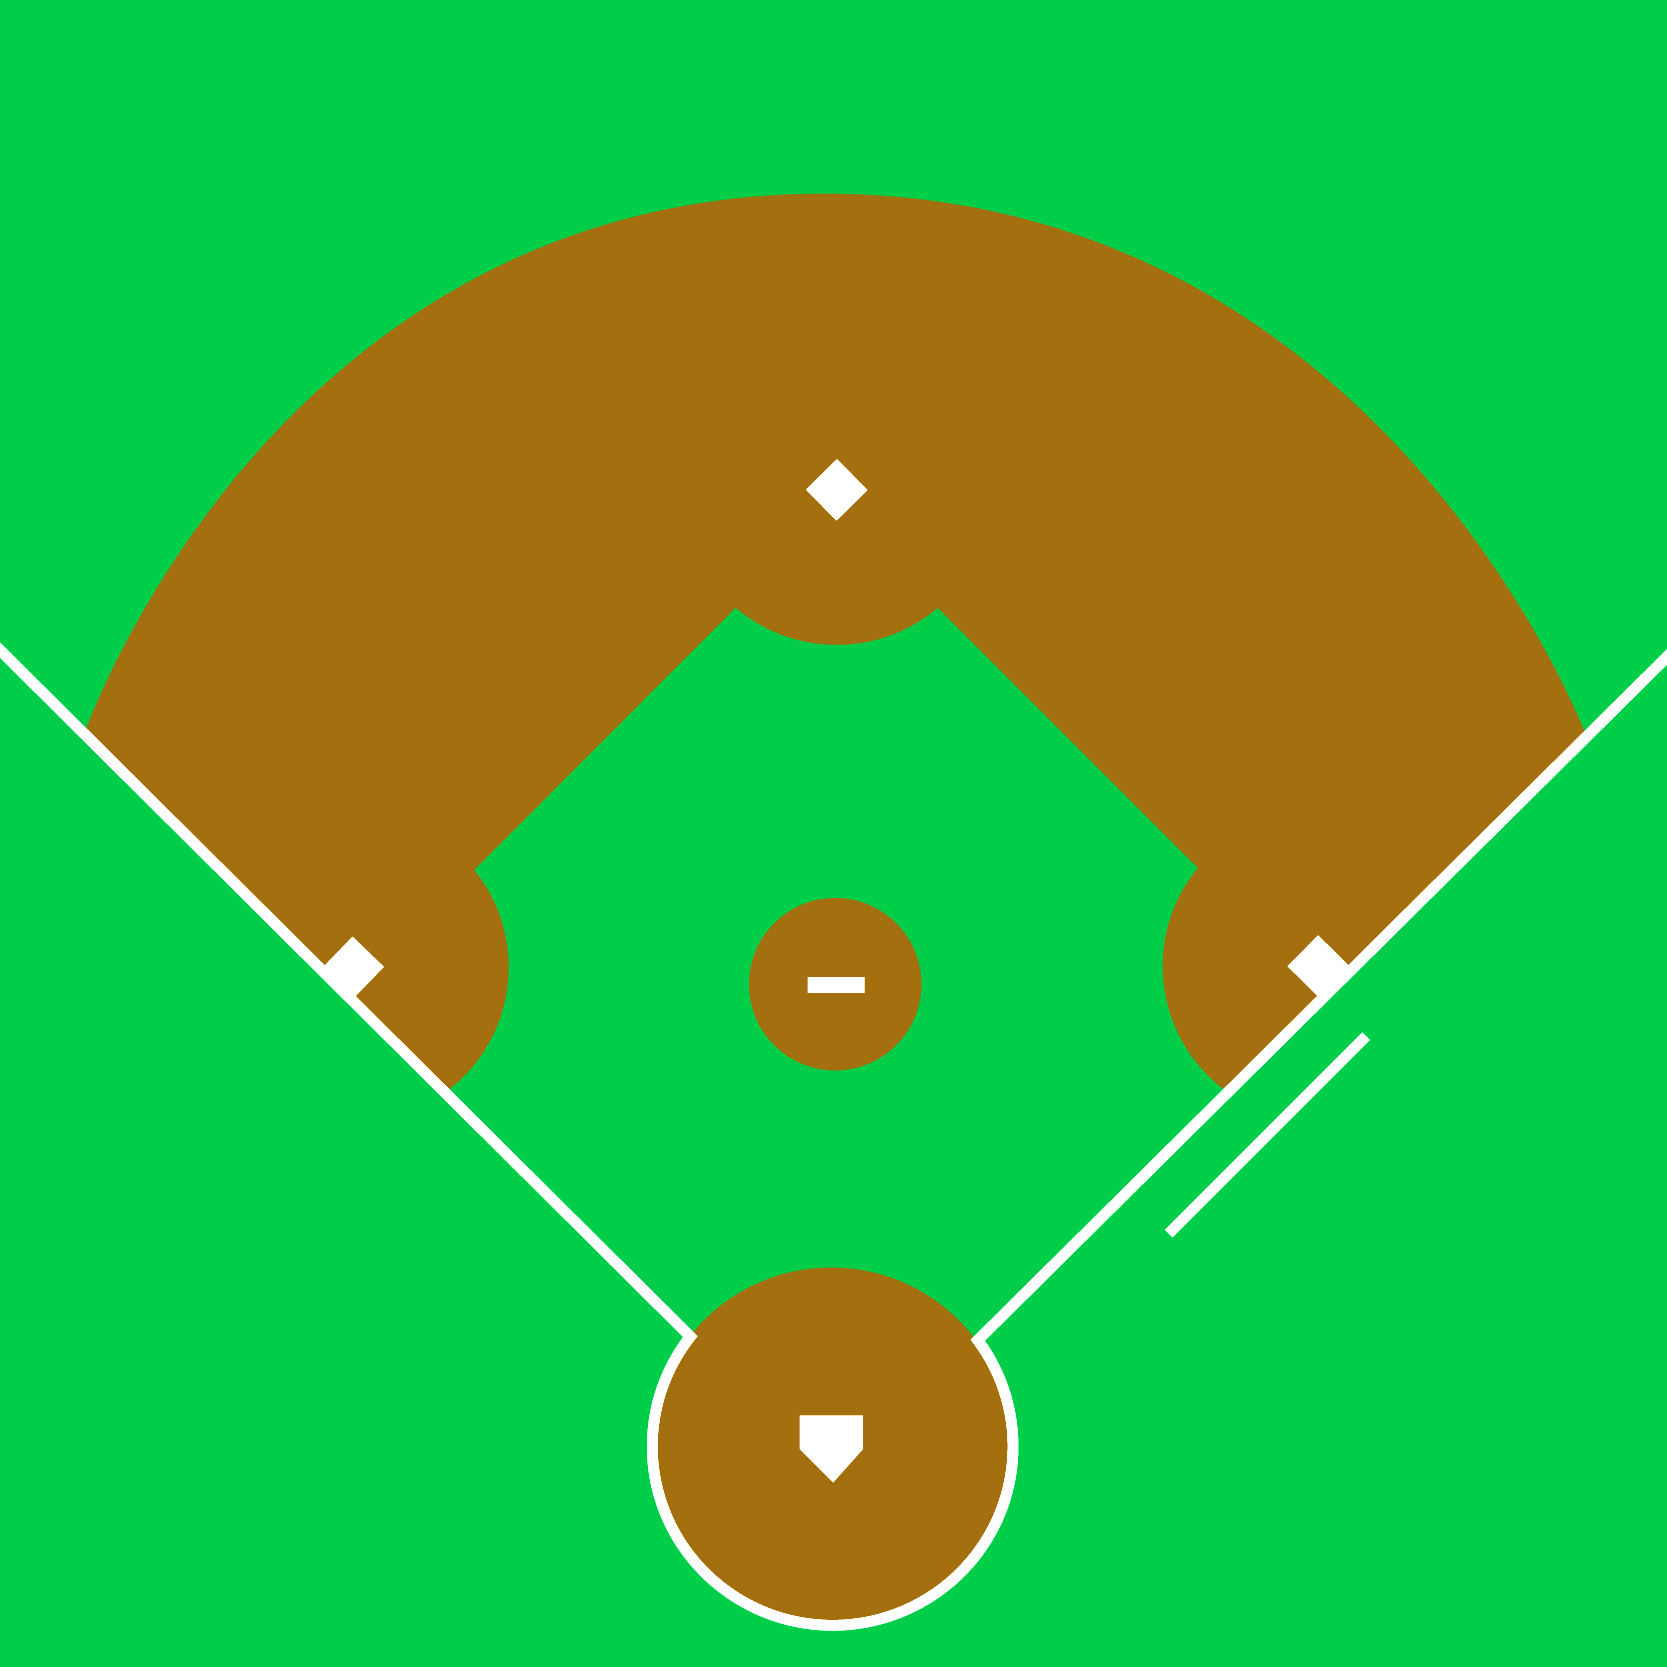 Baseball Diamond Images Baseball Diamond And Bats On